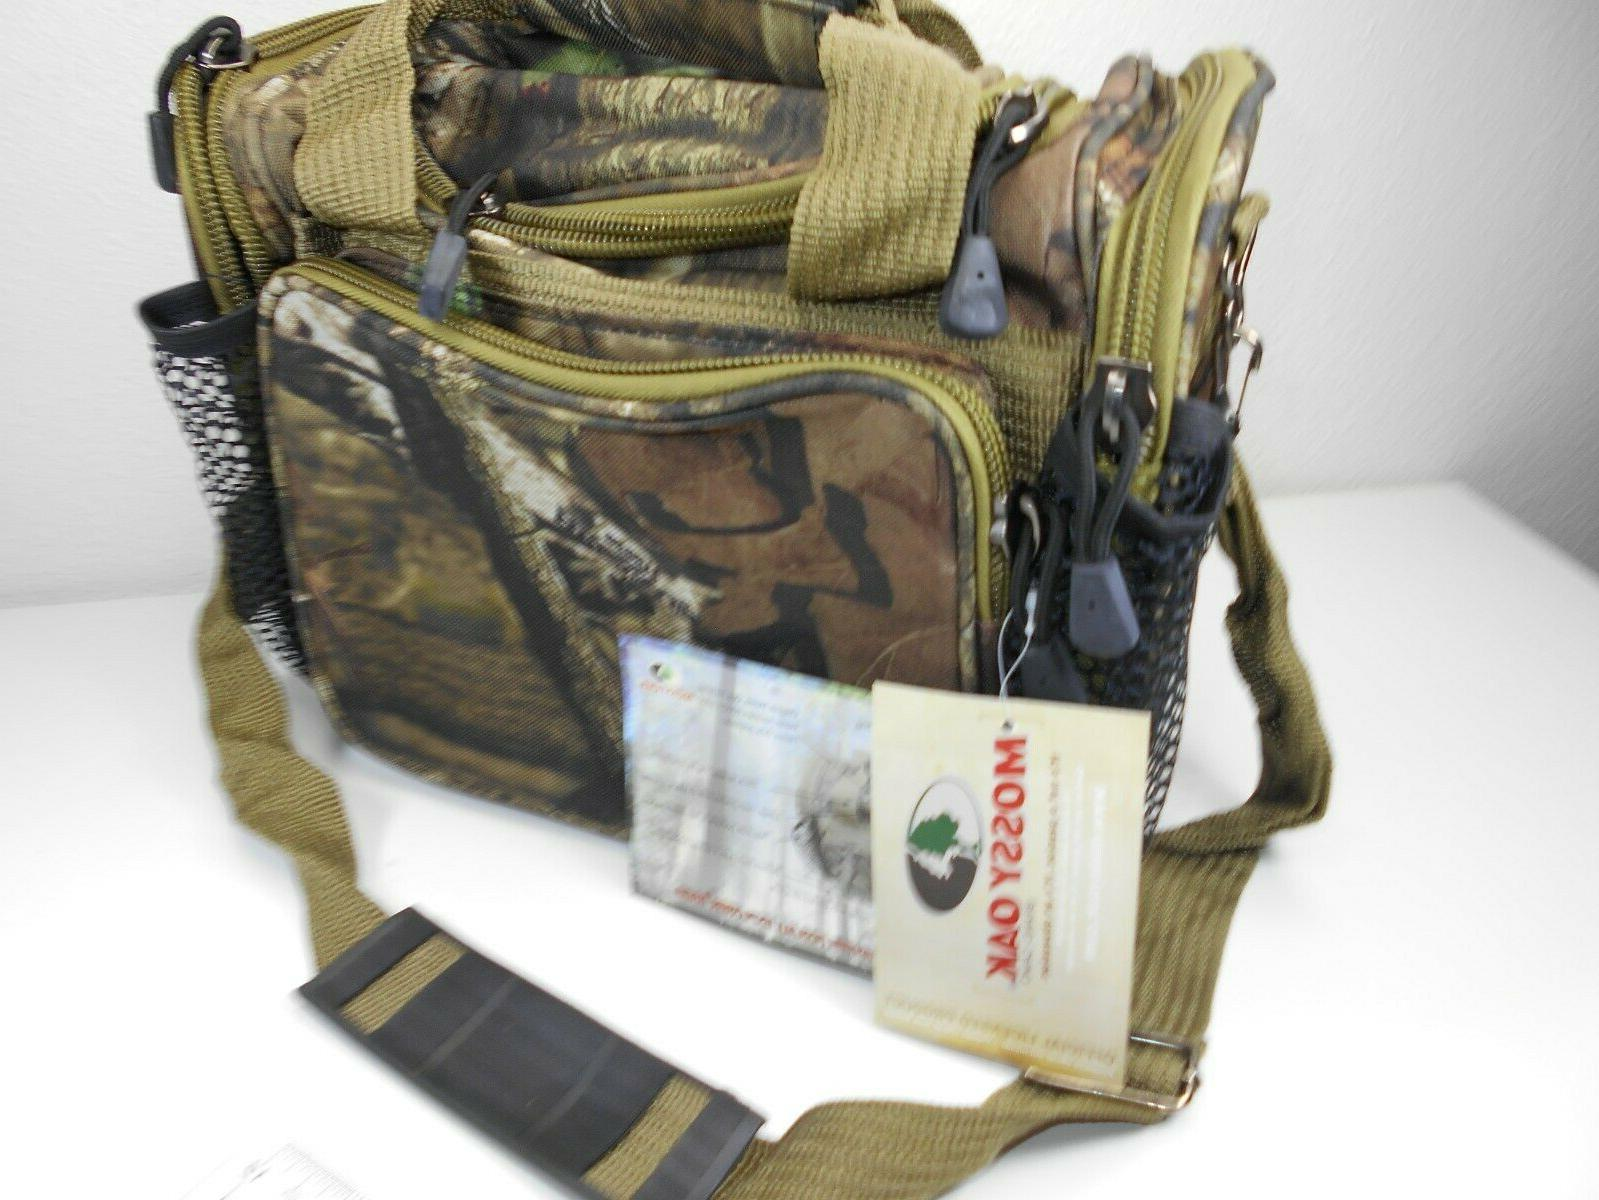 "Explorer Bag 13"" Authentic hunting gear gym bag camp travel"